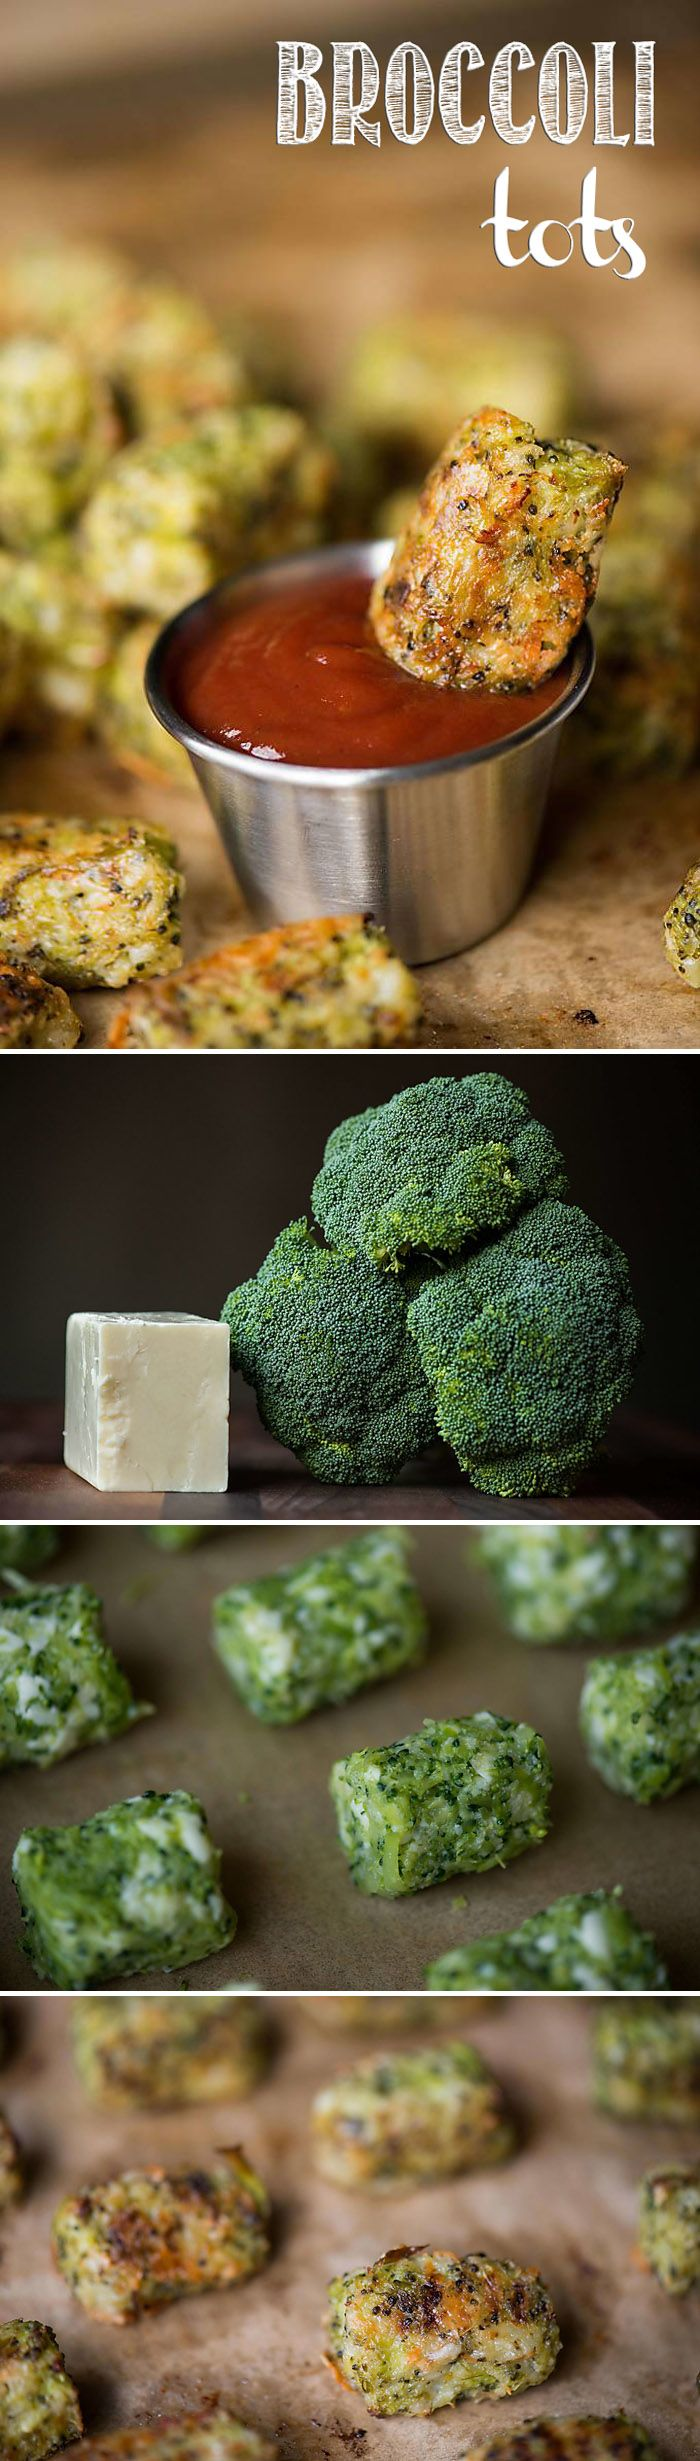 Since broccoli and cheese are one of life's great pairings, combine them into one low carb appetizer like these tasty Broccoli Tots!